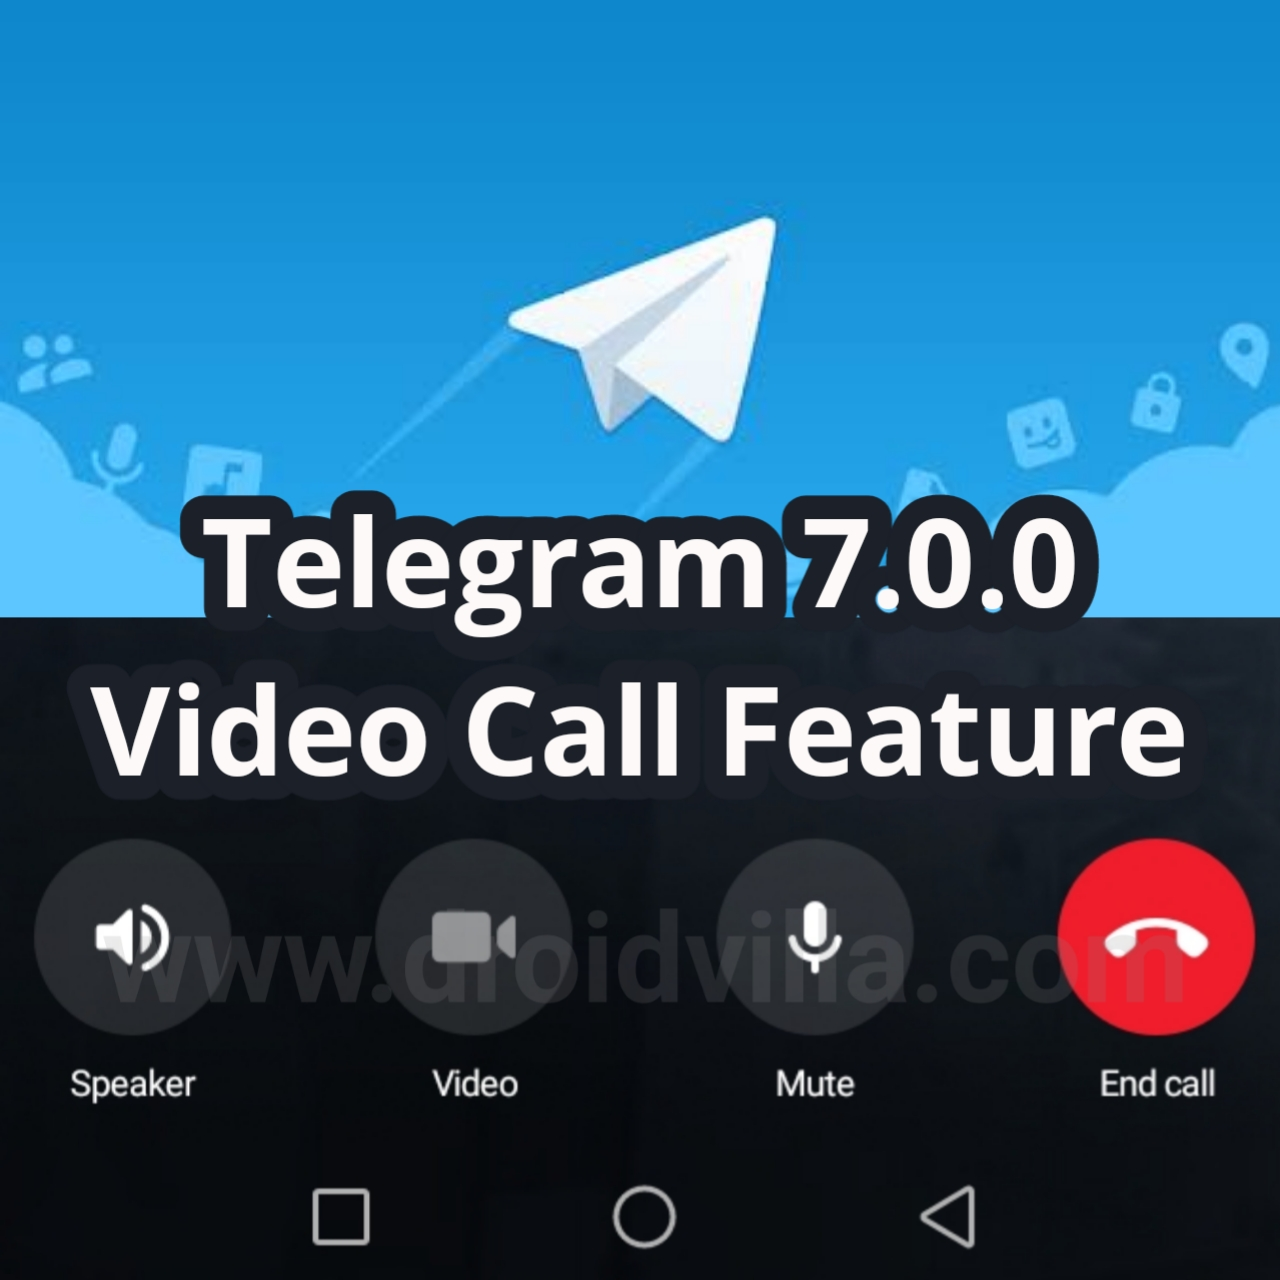 Is This The End Of Whatsapp? Telegram Introduces Video Call Feature On Its Latest 7.0.0 Version Update